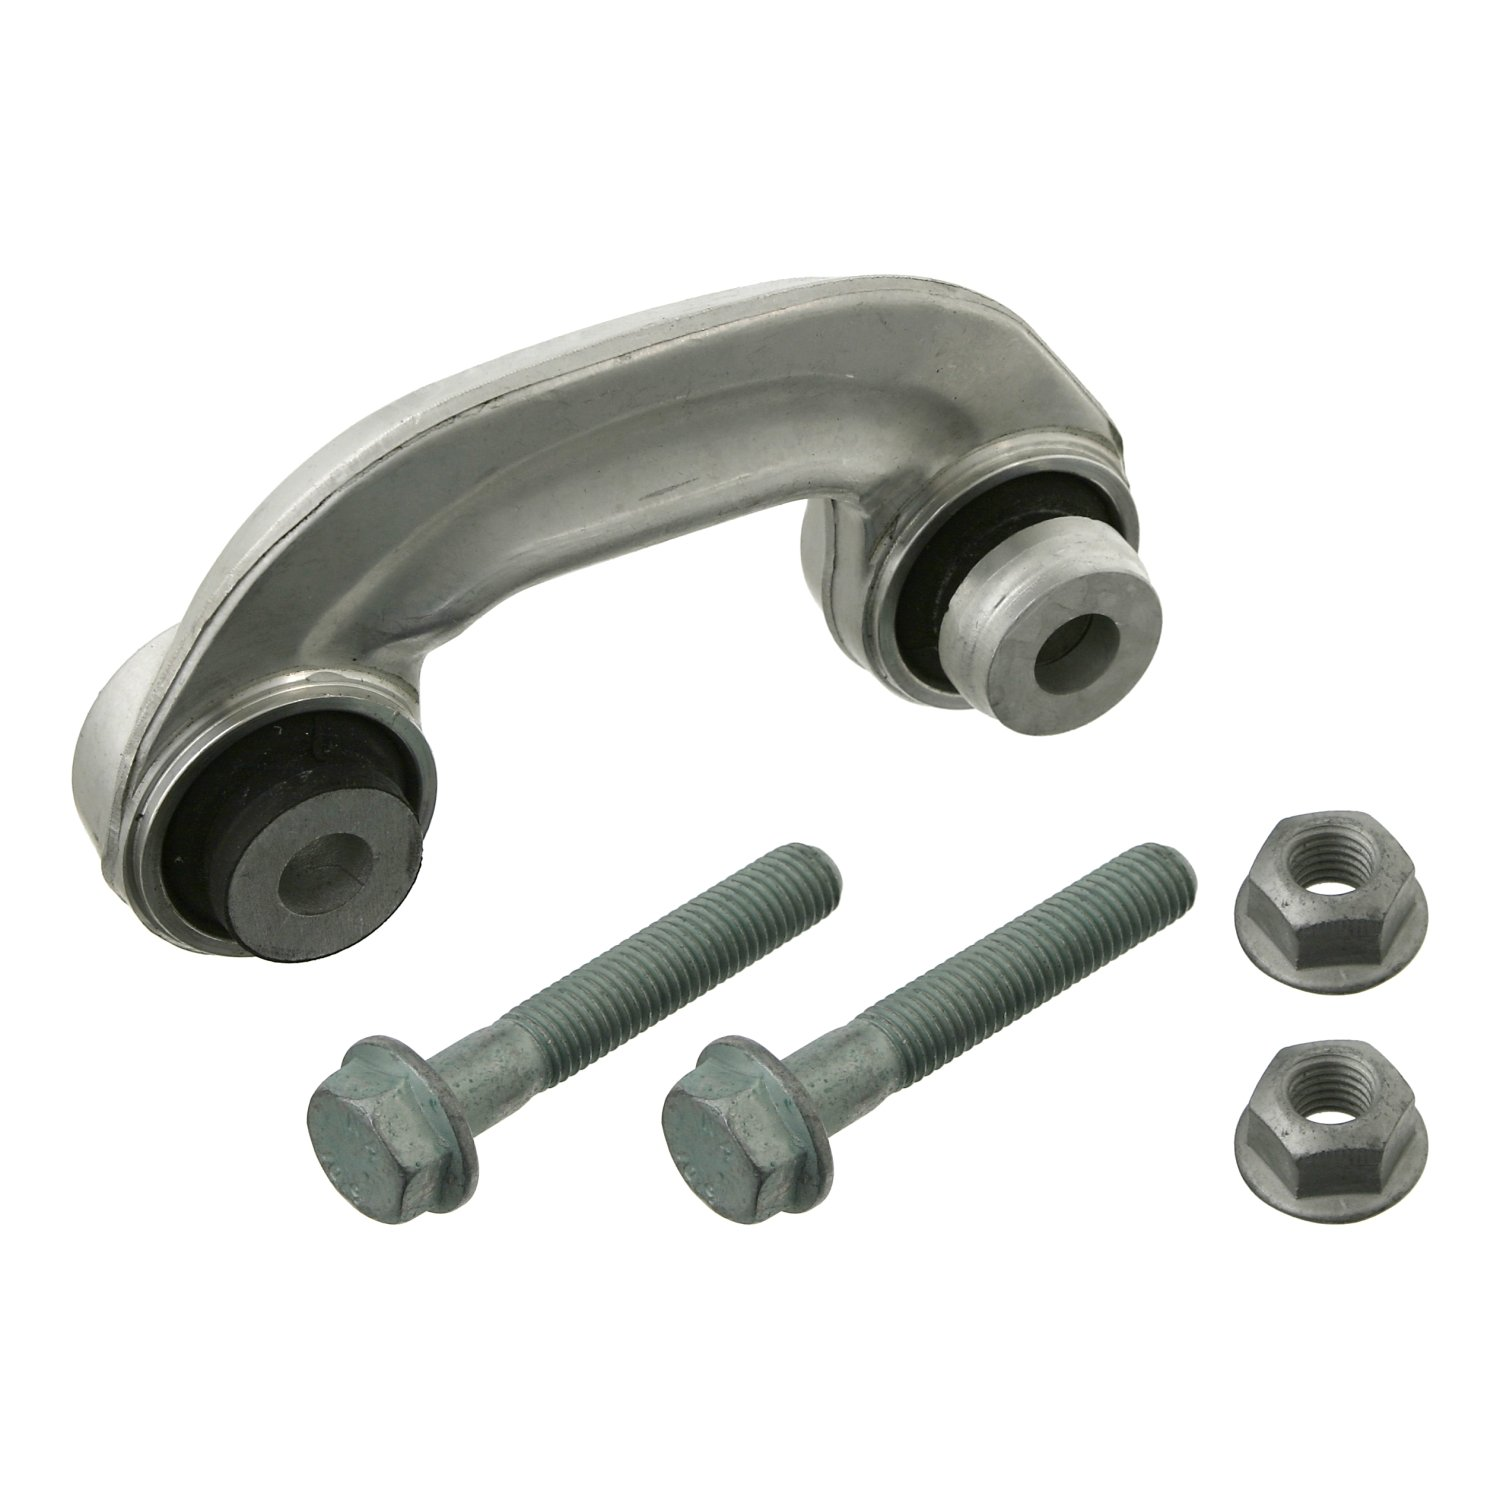 febi bilstein 19702 stabiliser link with screws and nuts (front axle right)  - Pack of 1